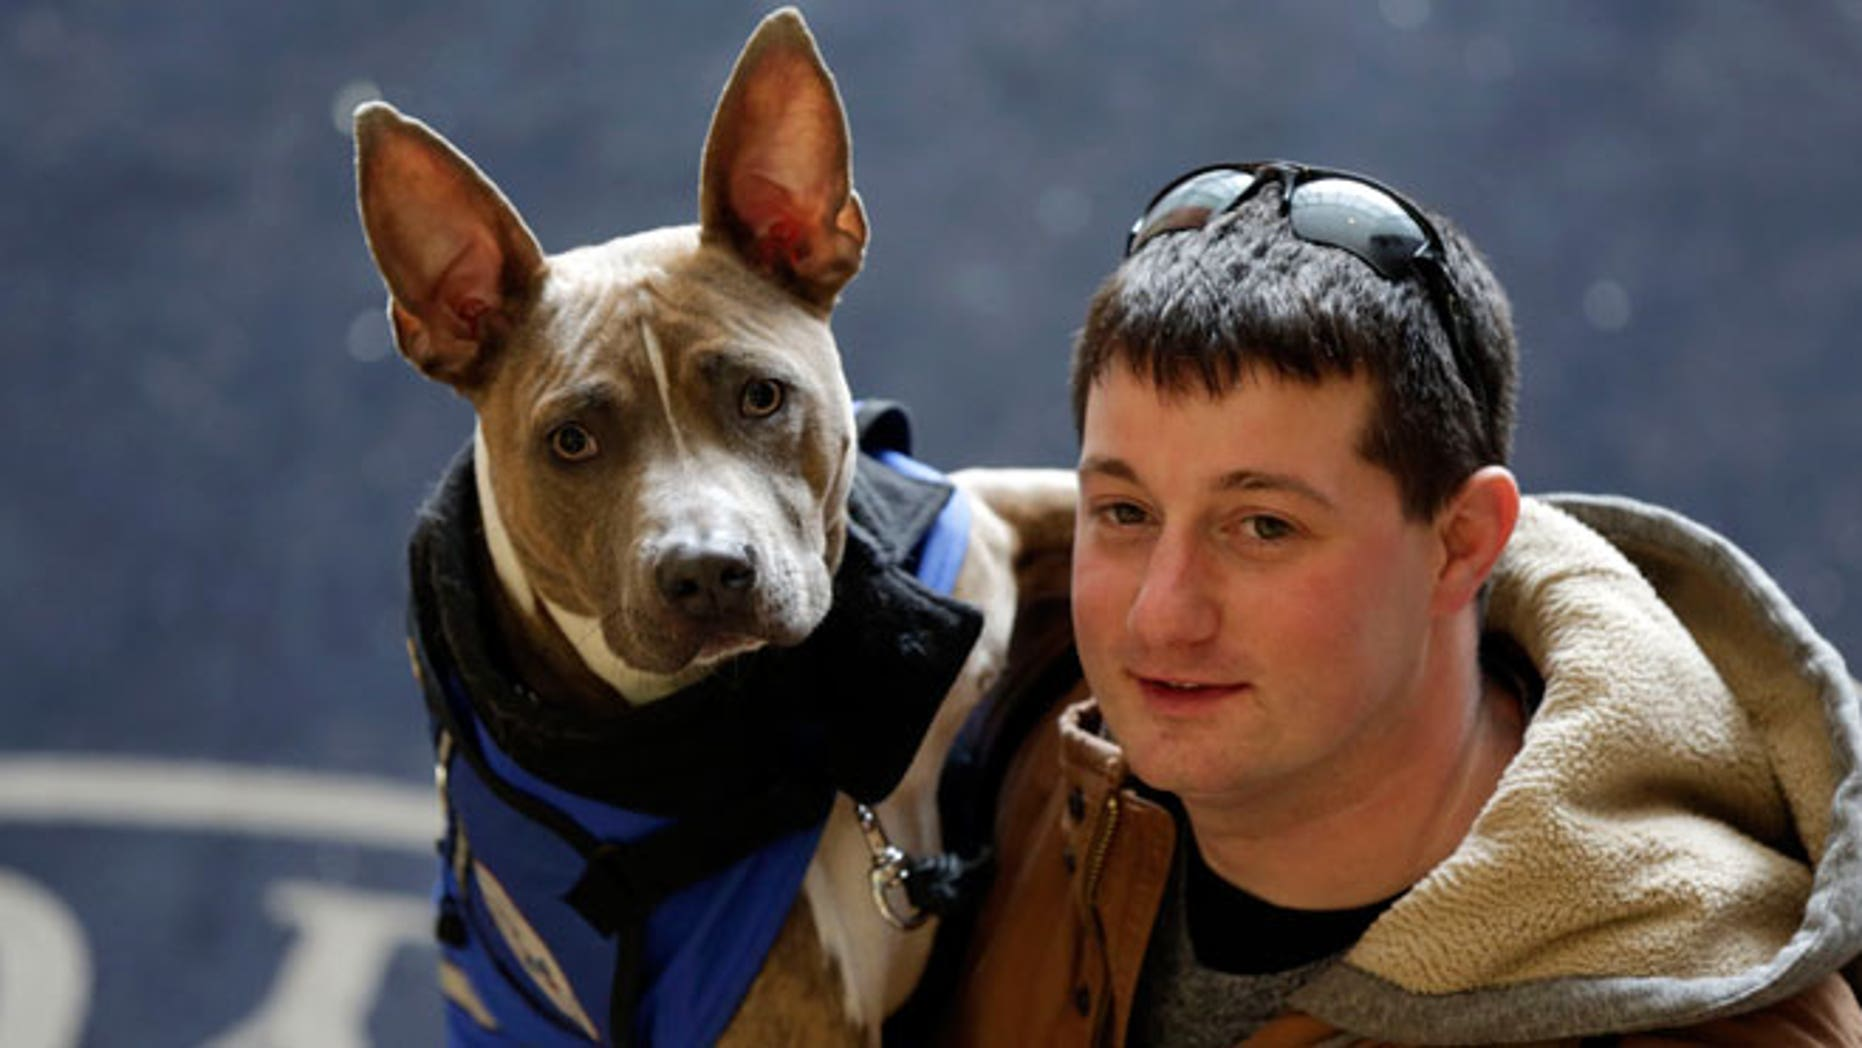 Former U.S. Marine Joe Bonfiglio, 24, and his pit bull assistance dog Zen, pose for a photograph on the campus of Mercy College, in Dobbs Ferry, NY, Wednesday, Feb. 4, 2015.